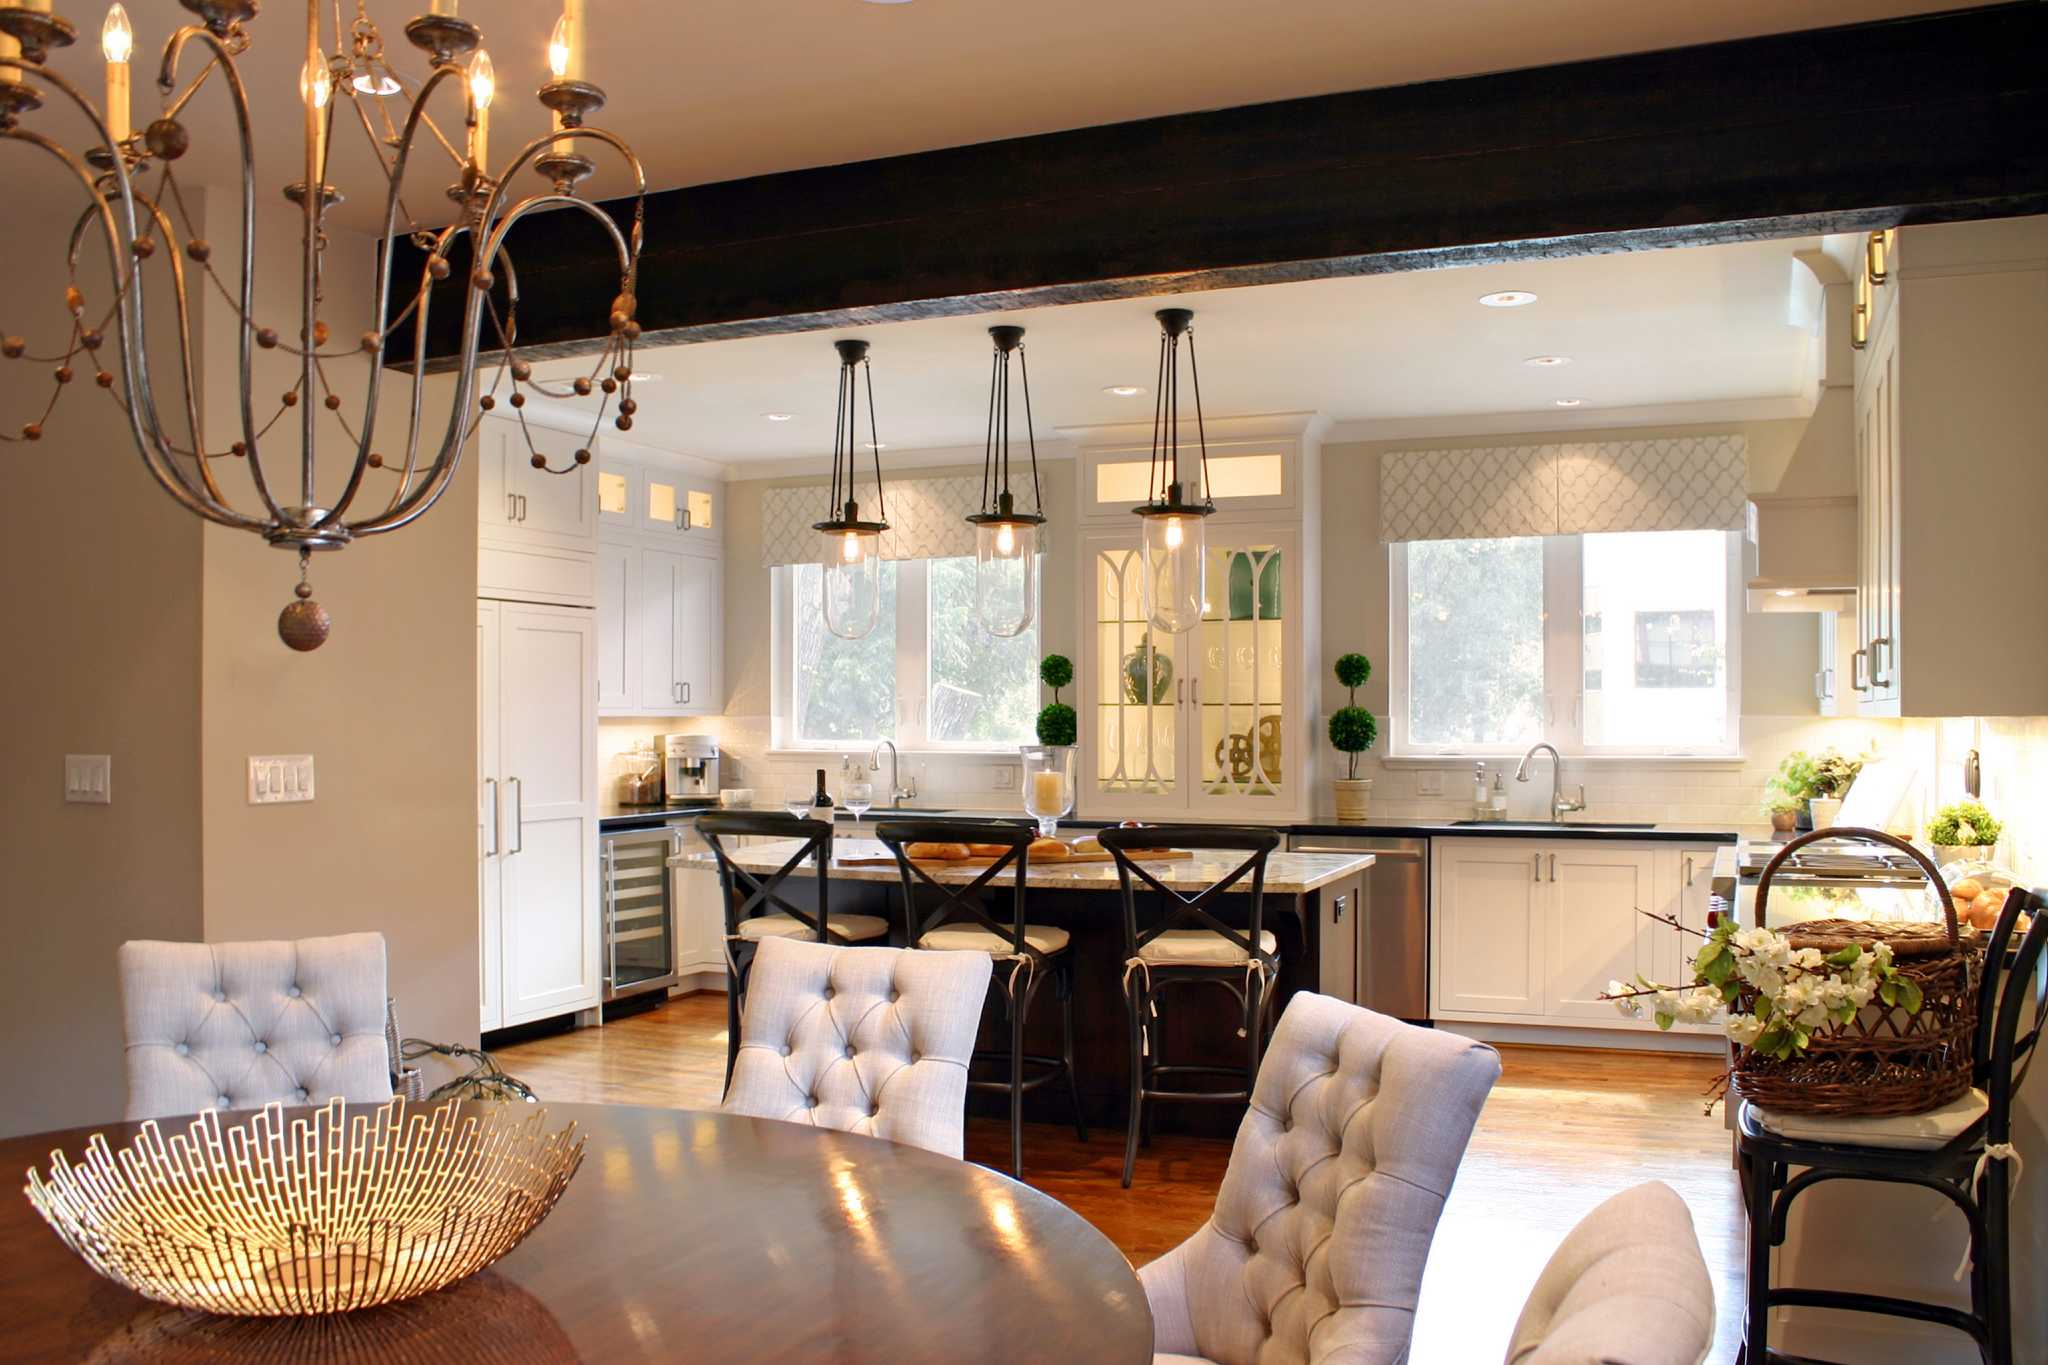 Before and after A total kitchen and dining makeover near